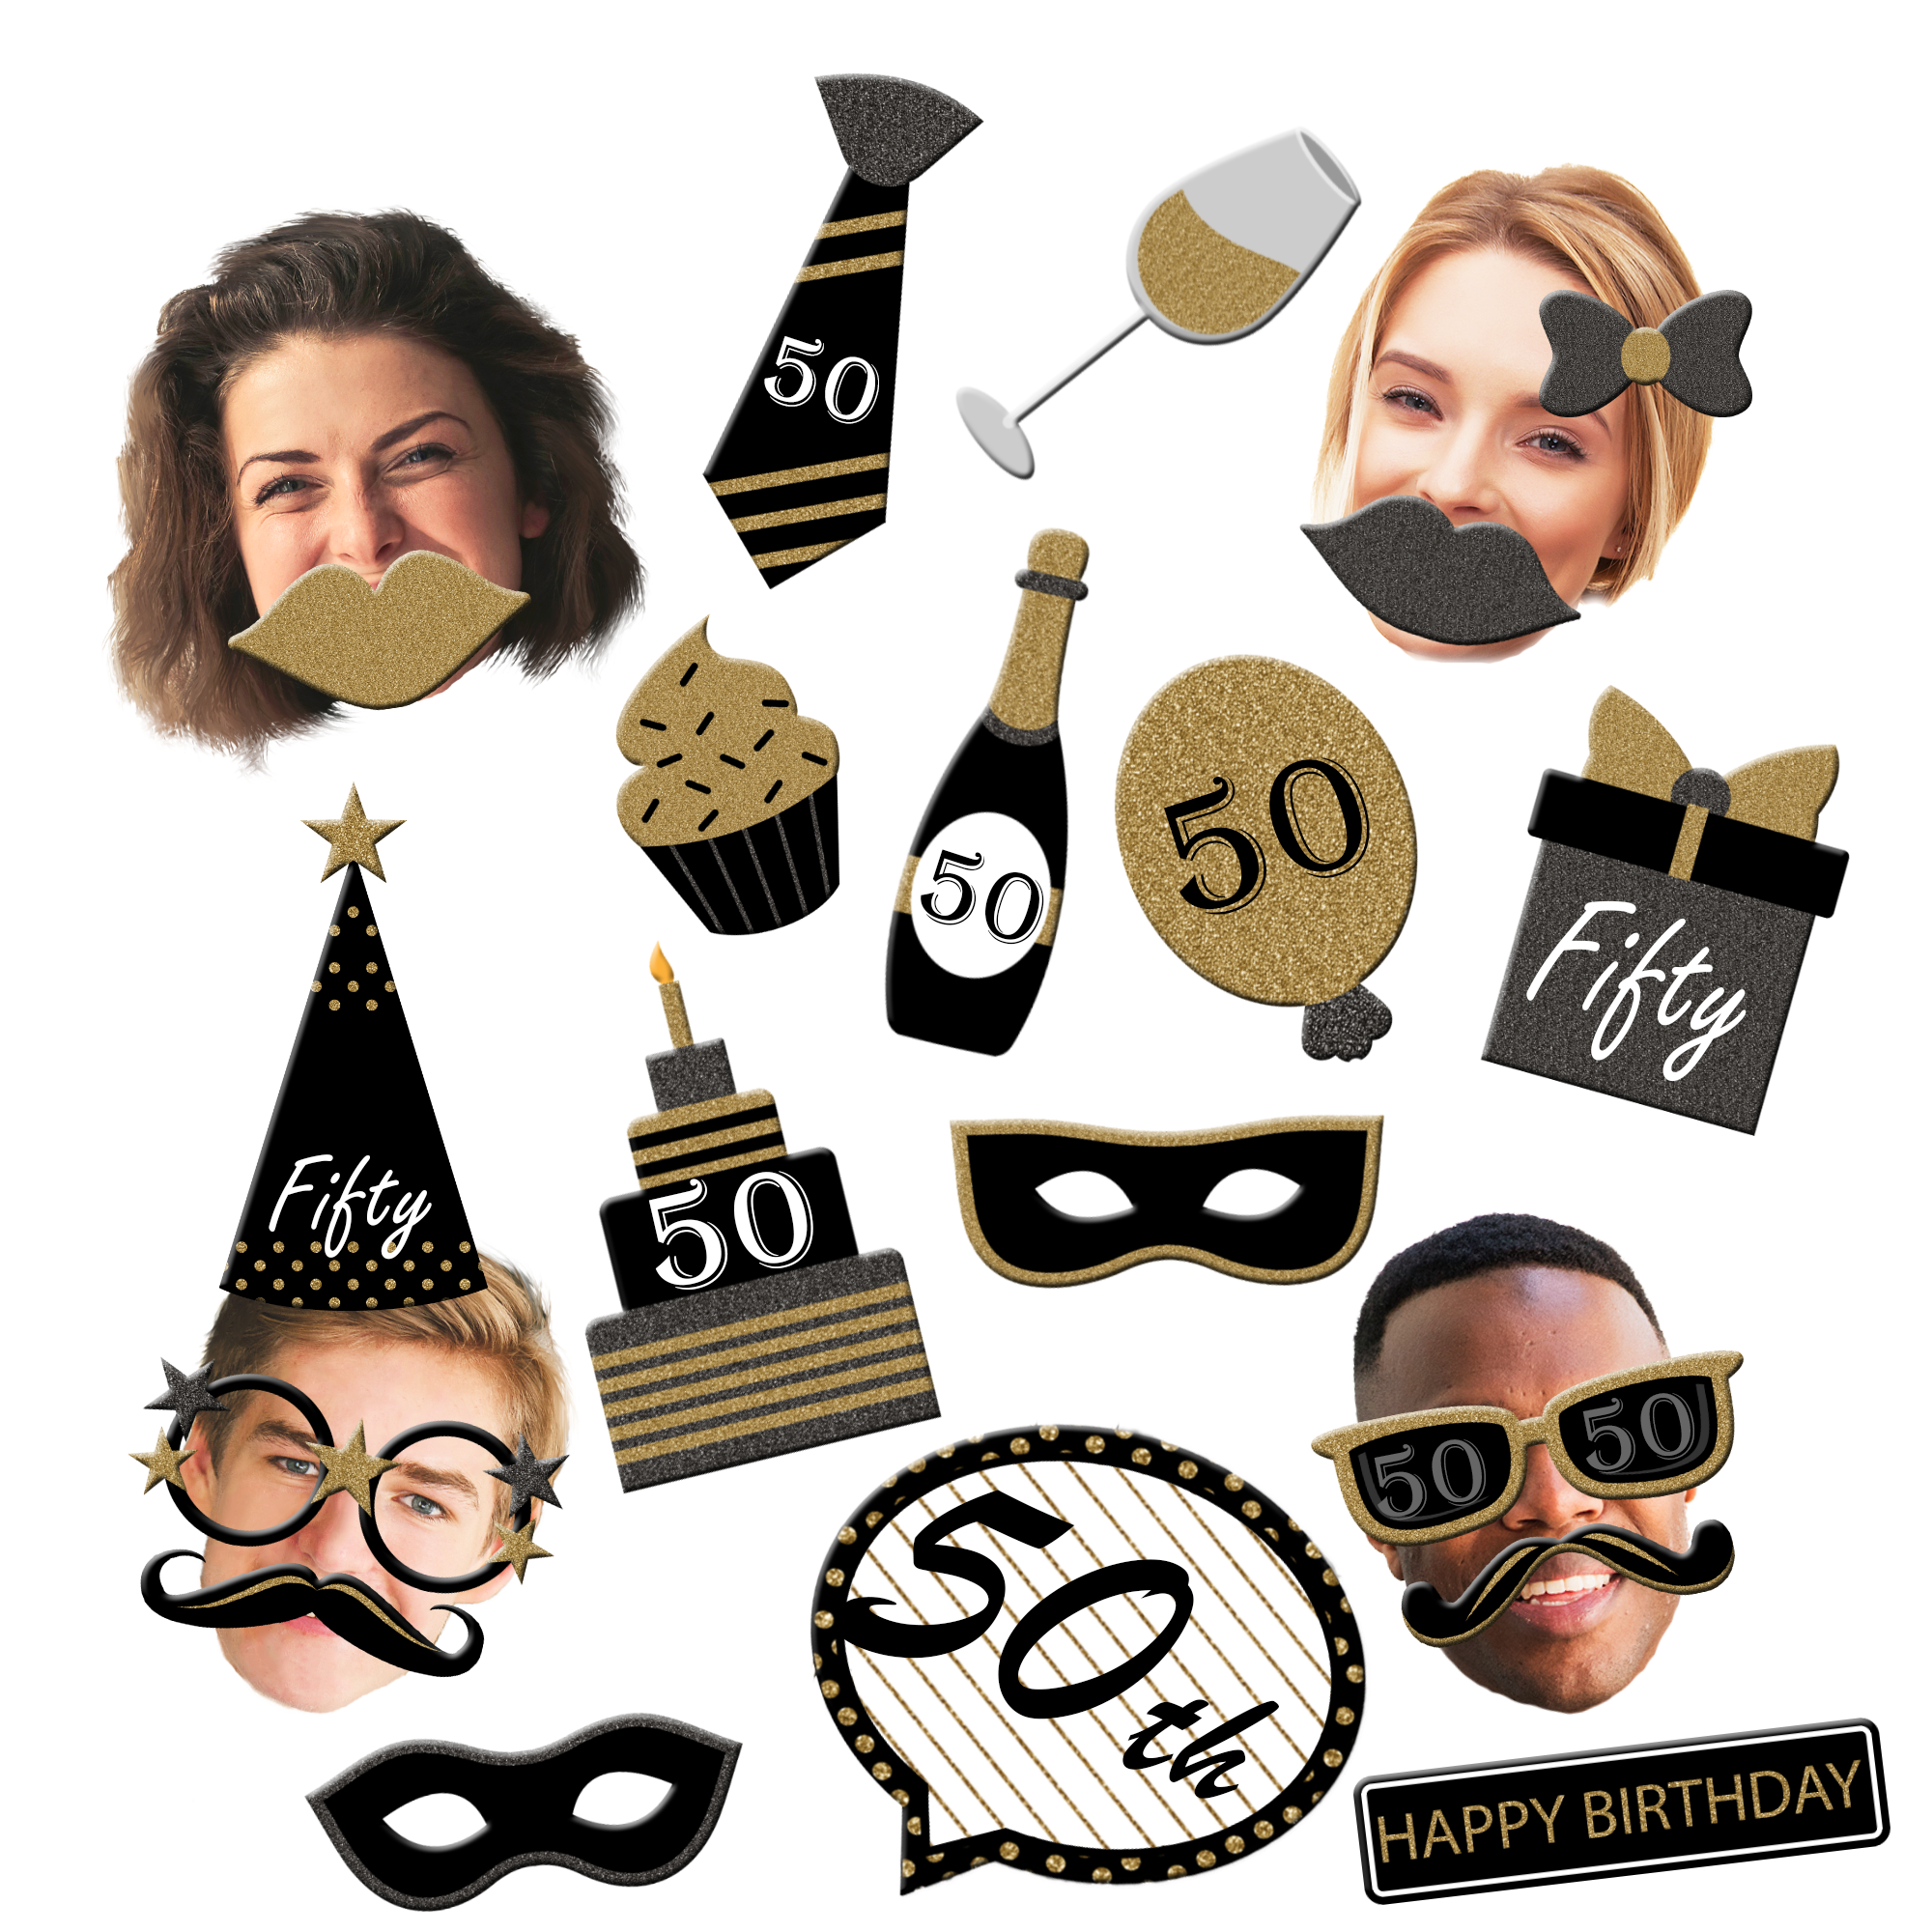 50th Birthday Black & Gold Photo Booth Props 20pcs Assembled - BirthdayGalore.com